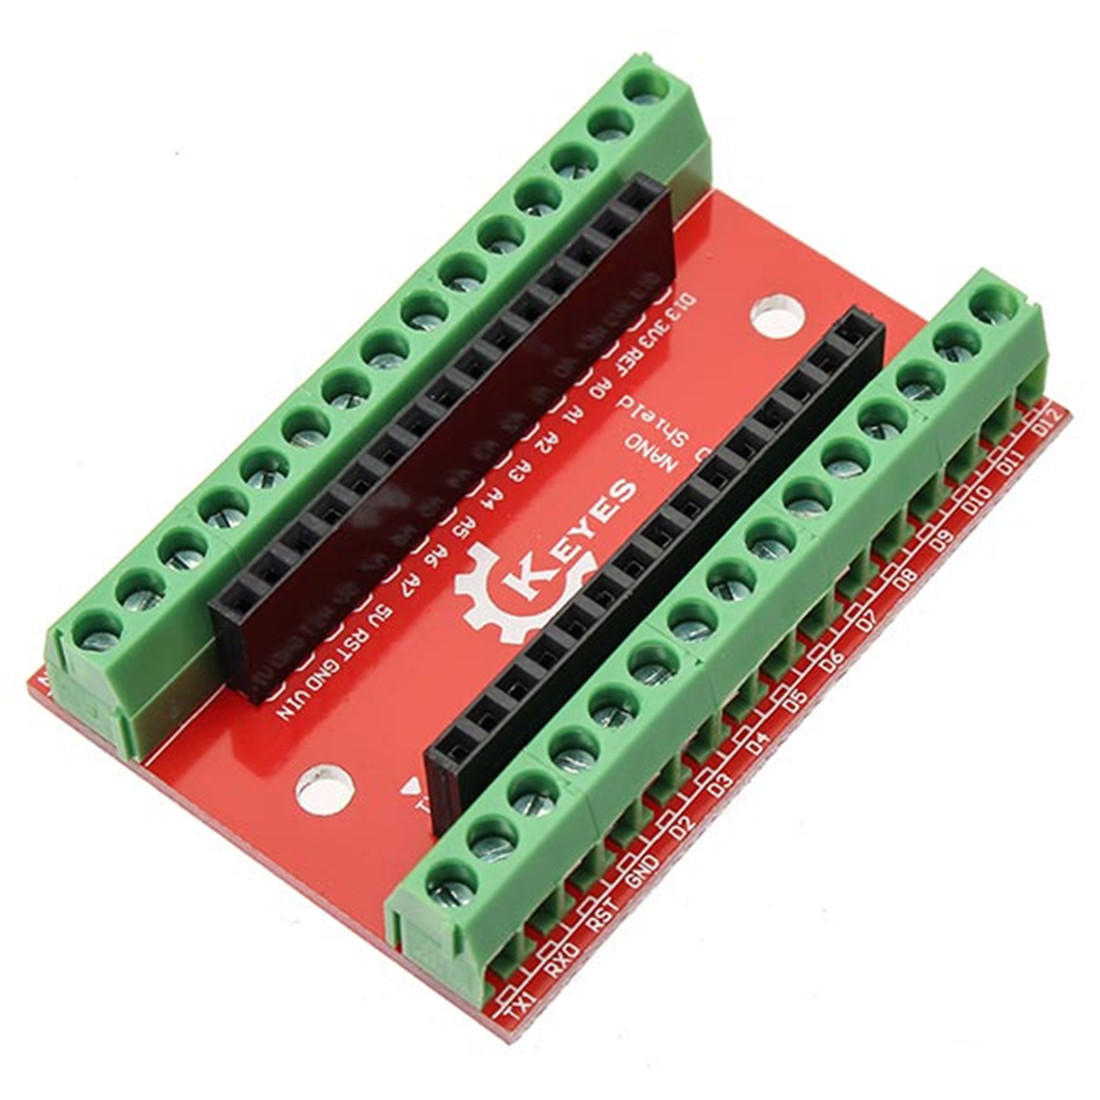 5pcs NANO IO Shield Expansion Board Geekcreit for Arduino - products that work with official Arduino boards